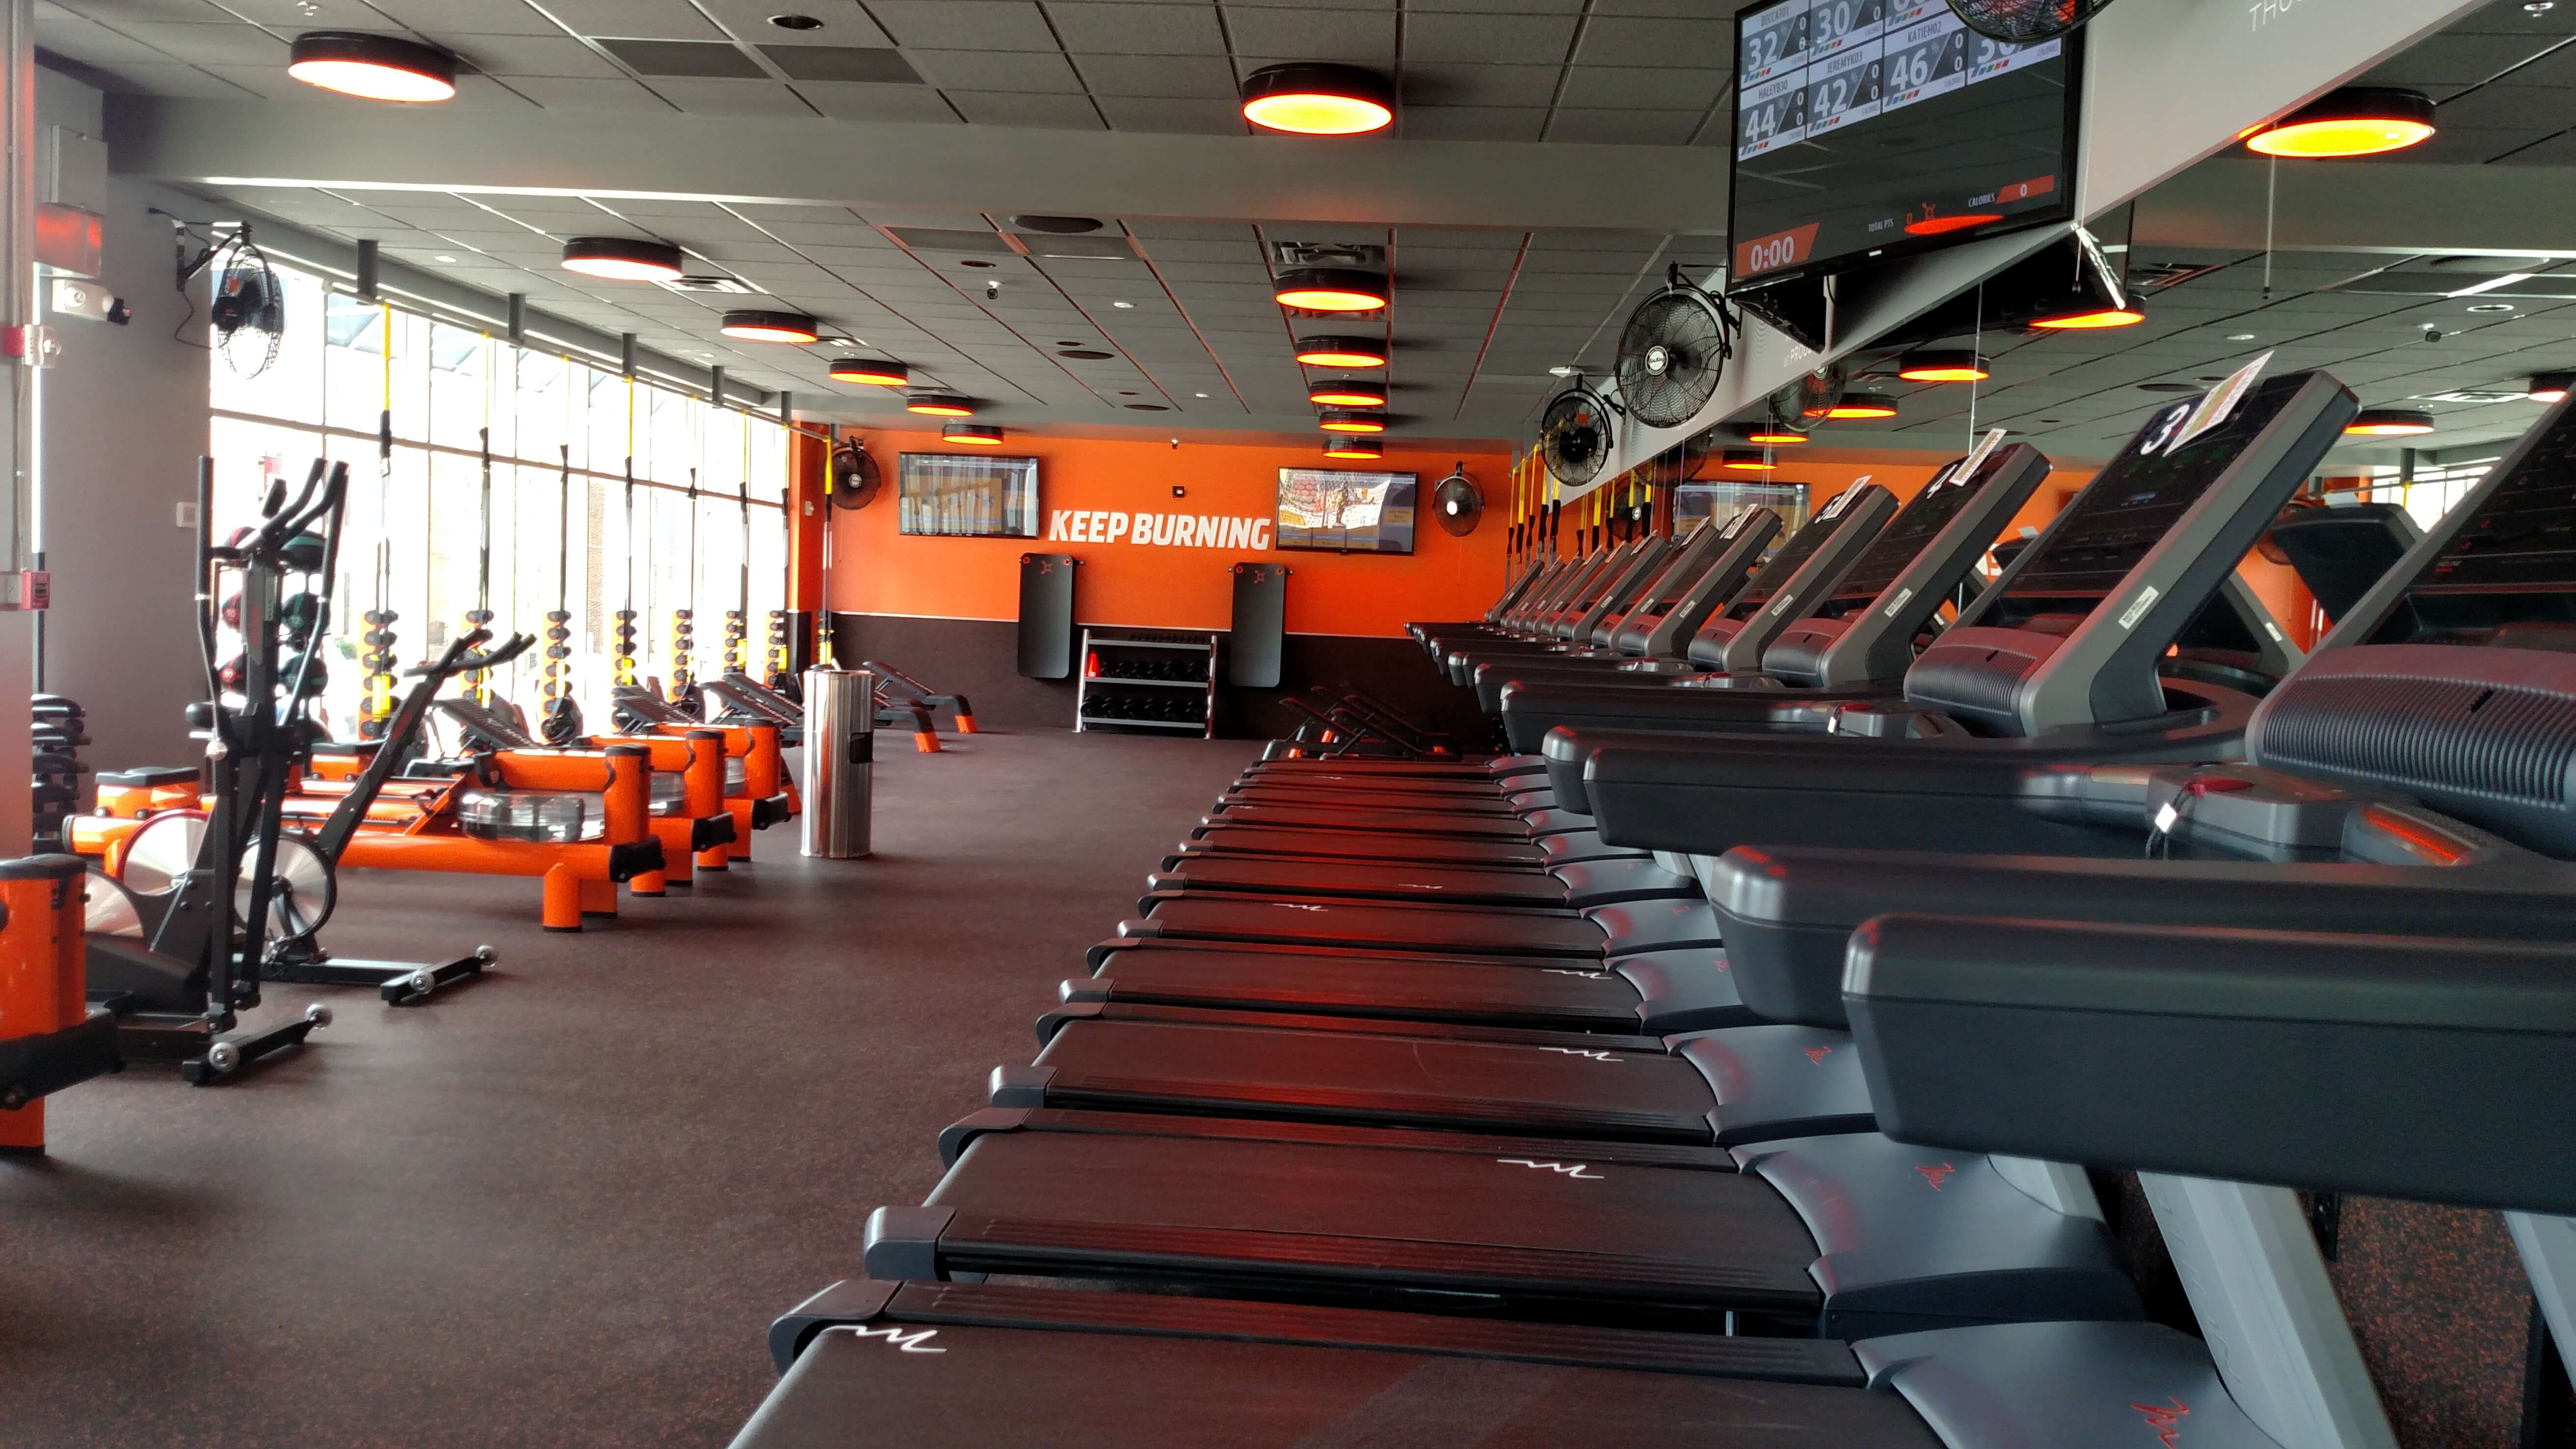 The Workout Room Consists Of Treadmills, Rowing Machines, Free Weights,